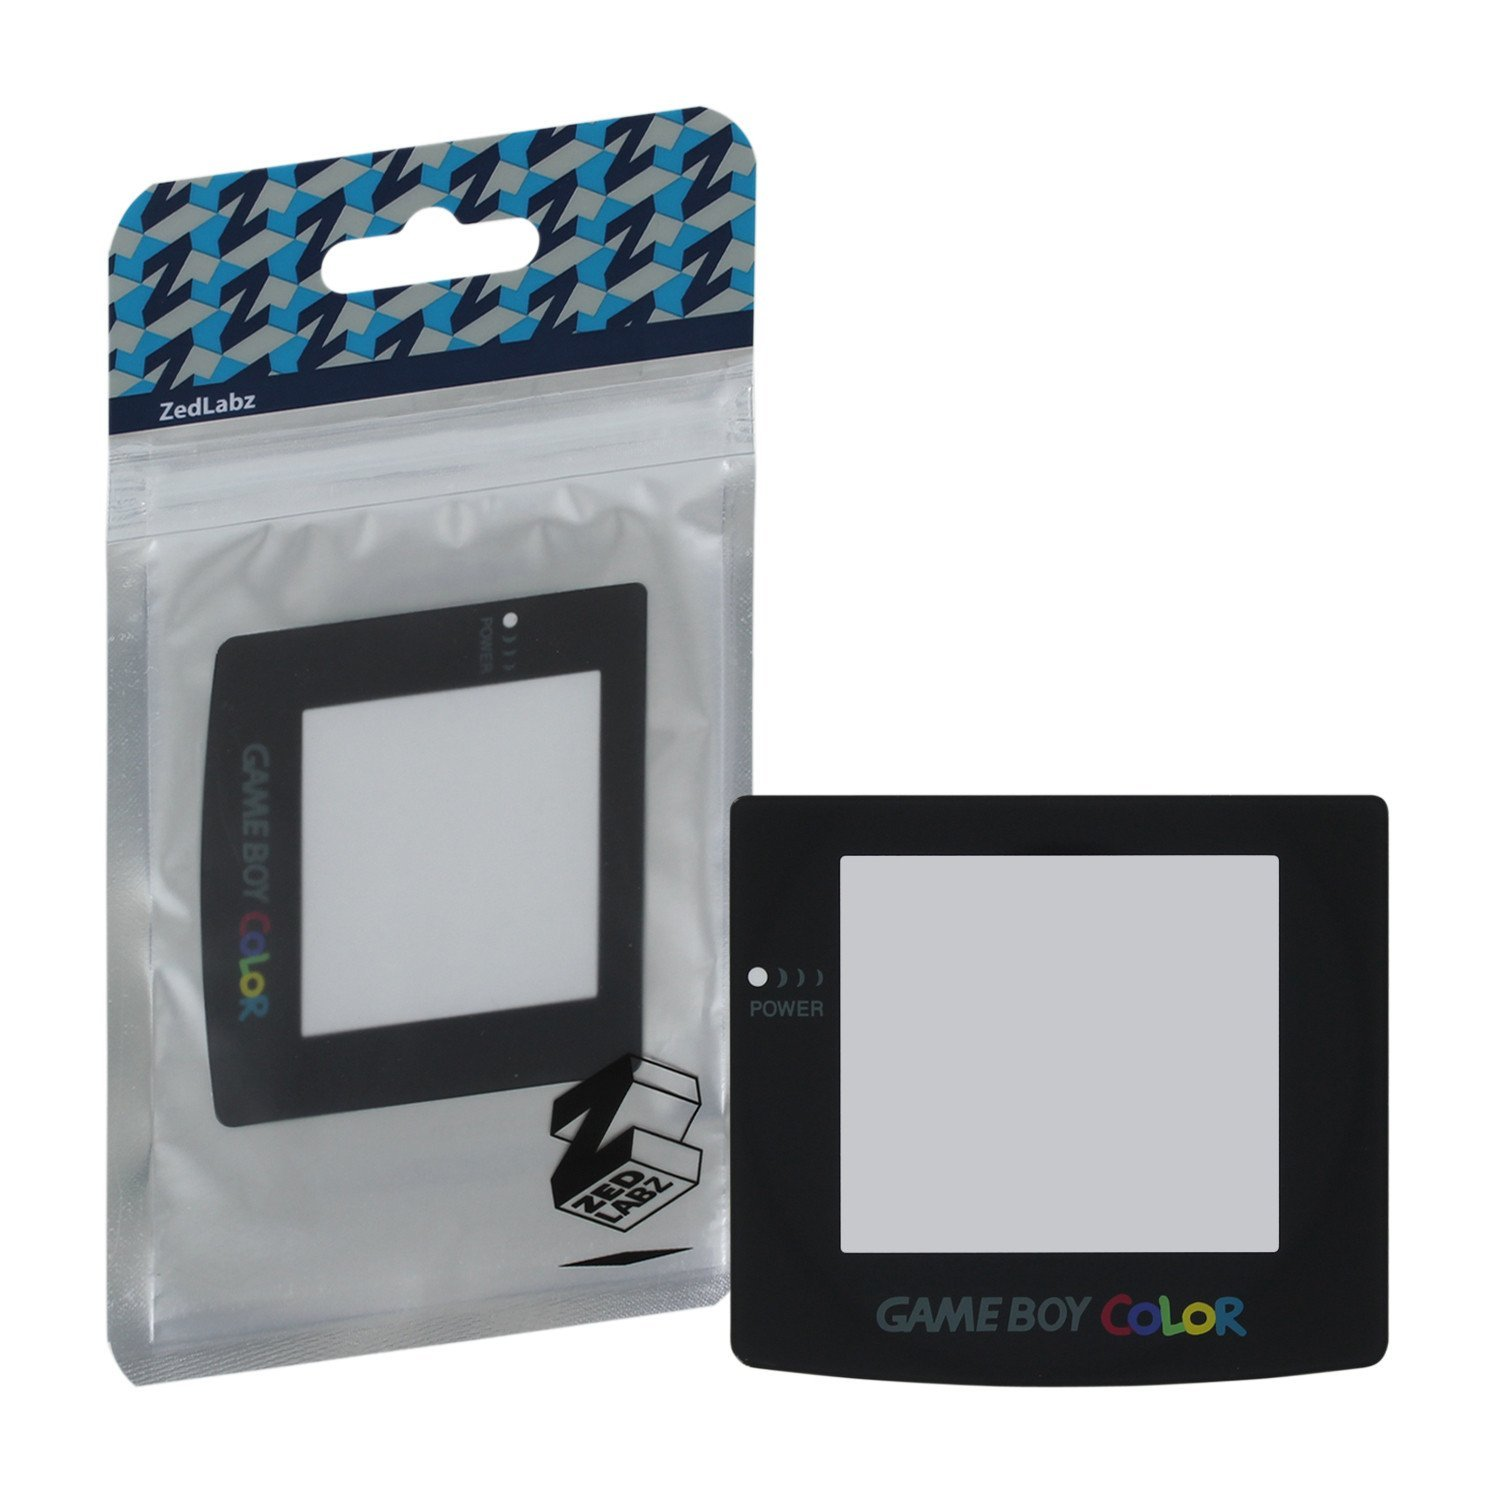 ZedLabz replacement screen lens plastic cover for Nintendo Game Boy Color - $2.95 - $5.19